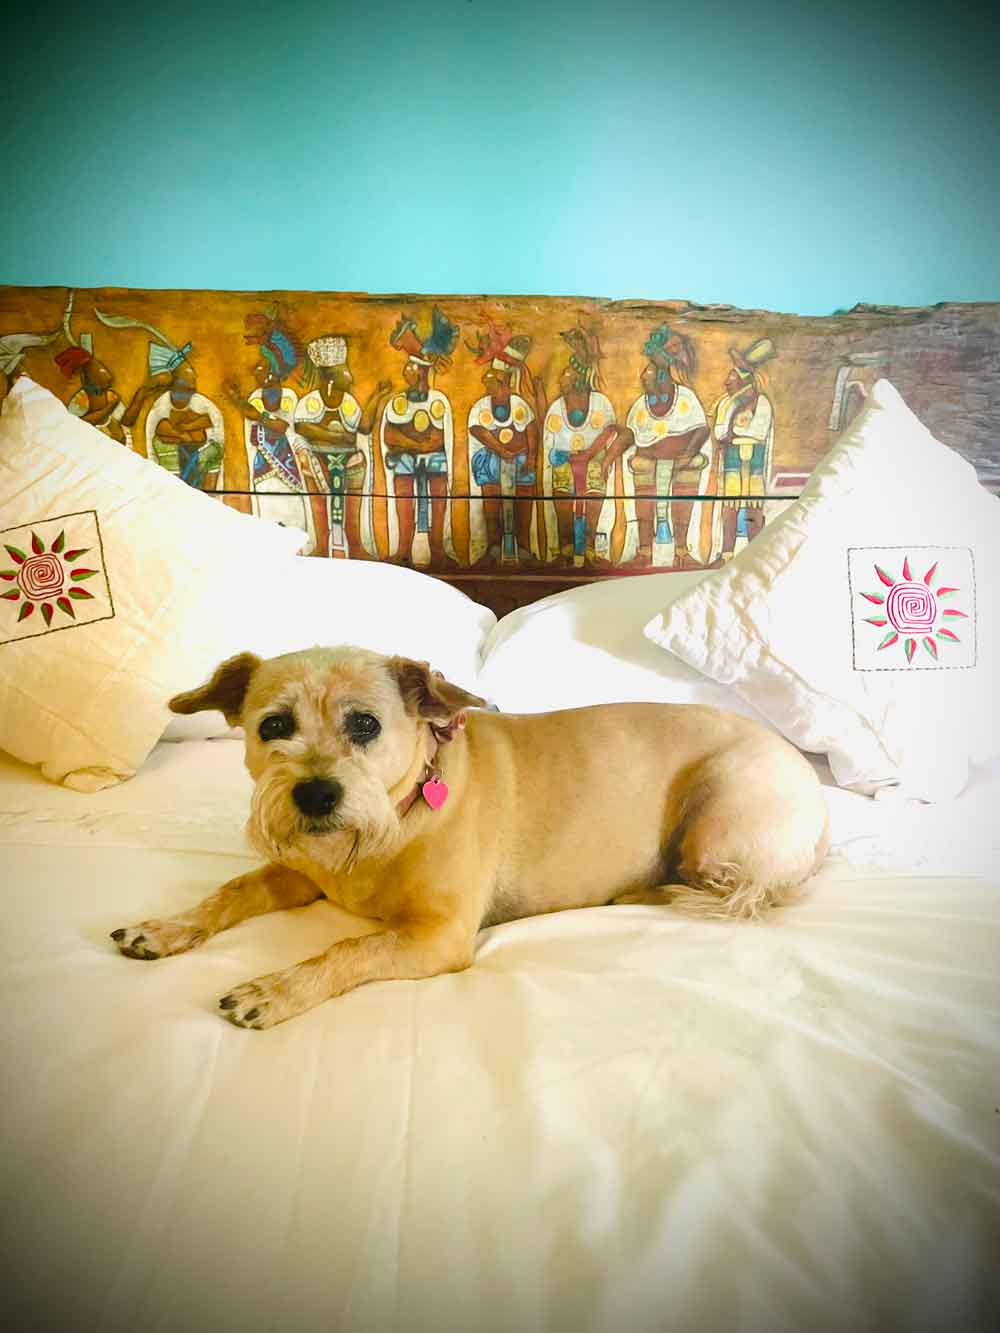 My Fur Baby in Our Hotel in Holbox